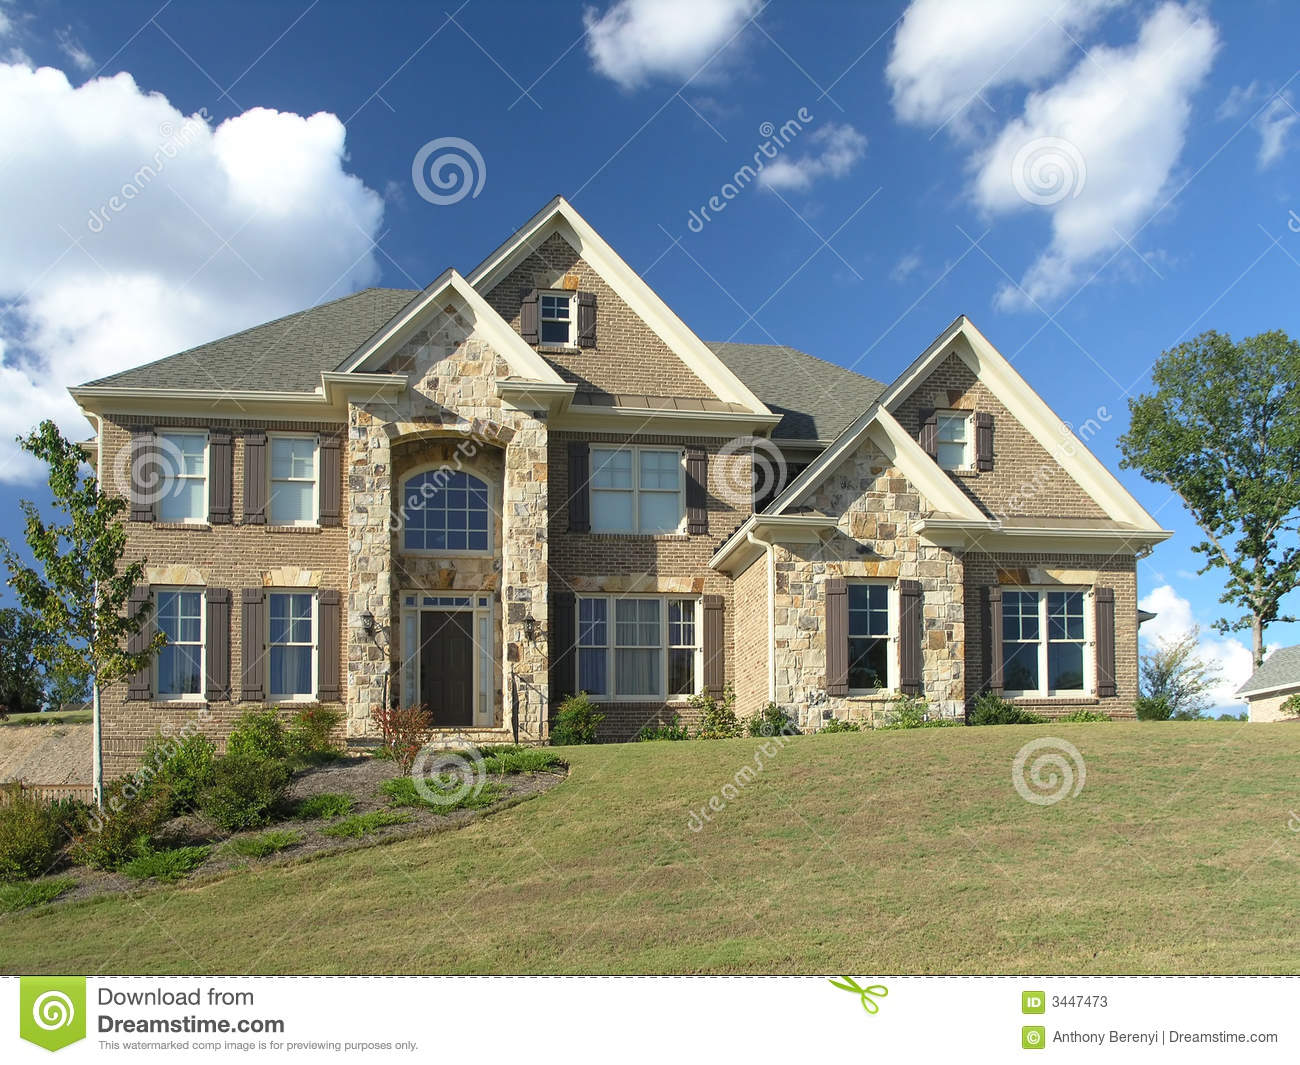 Luxury Home Exterior 57 Stock Photos Image 3447473